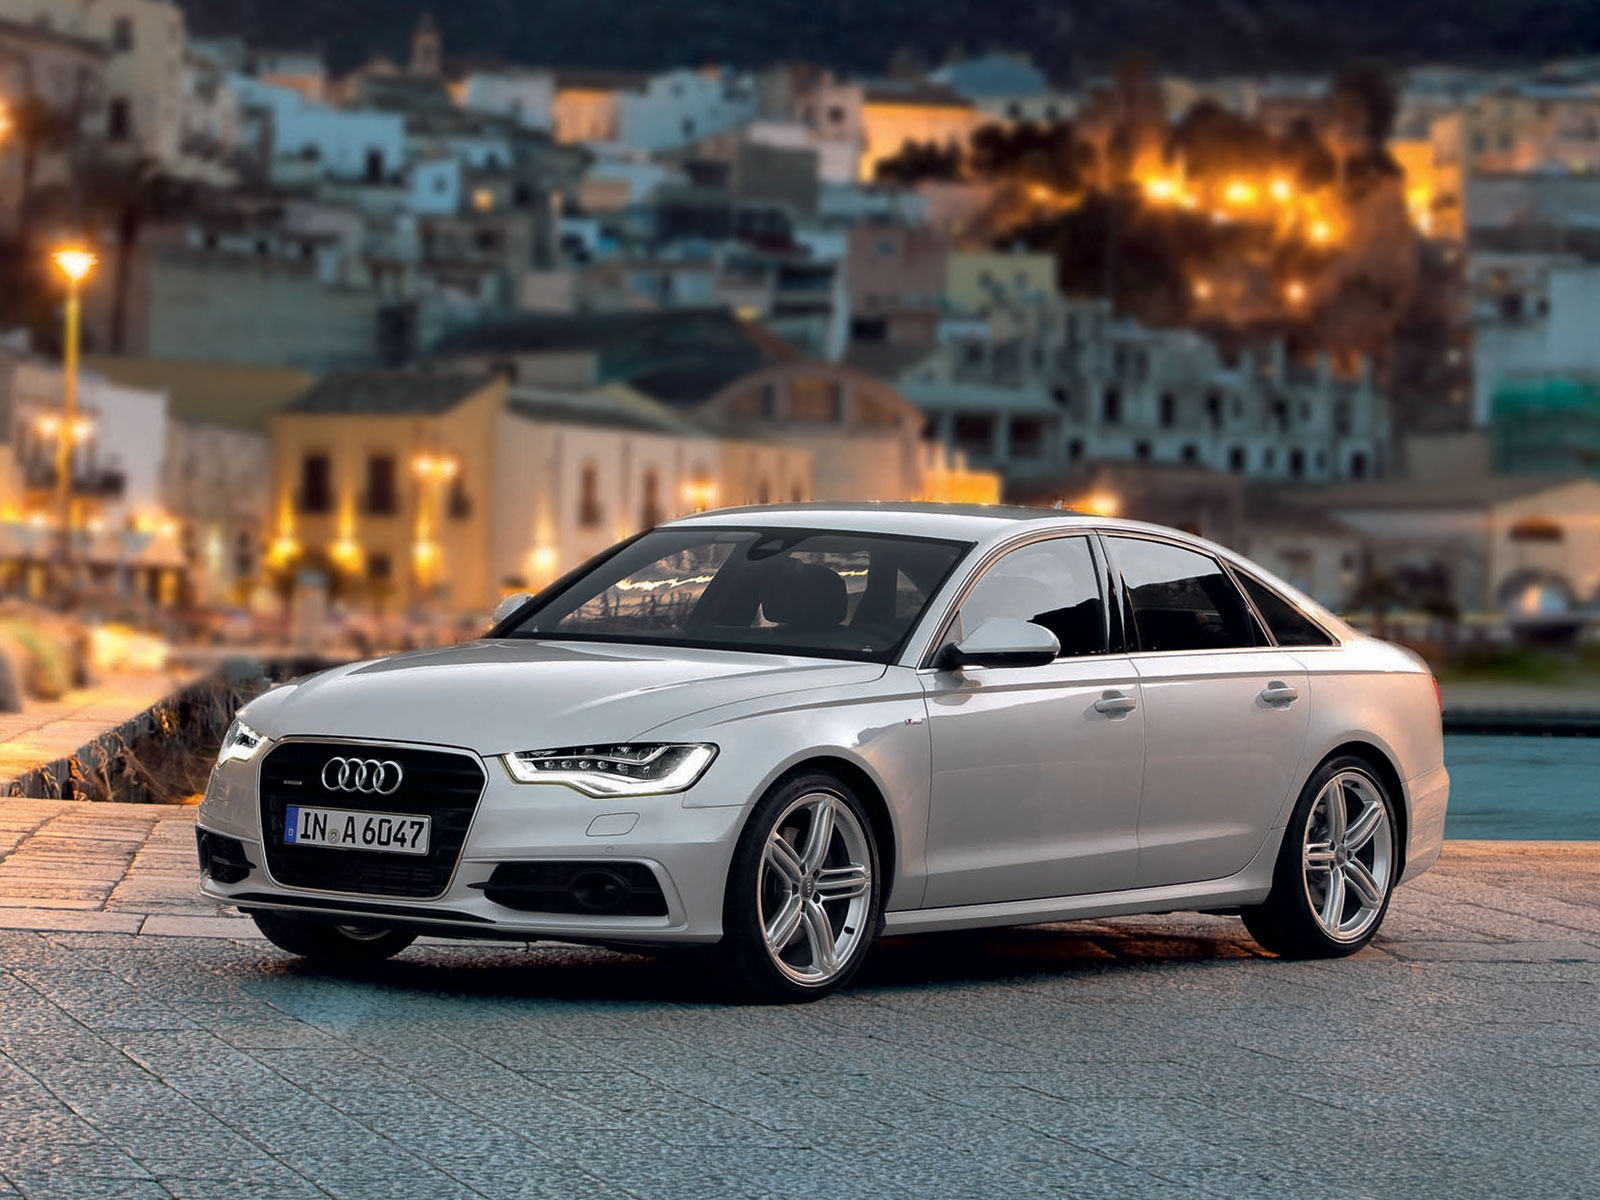 2014 audi a6 c7 pictures information and specs auto. Black Bedroom Furniture Sets. Home Design Ideas